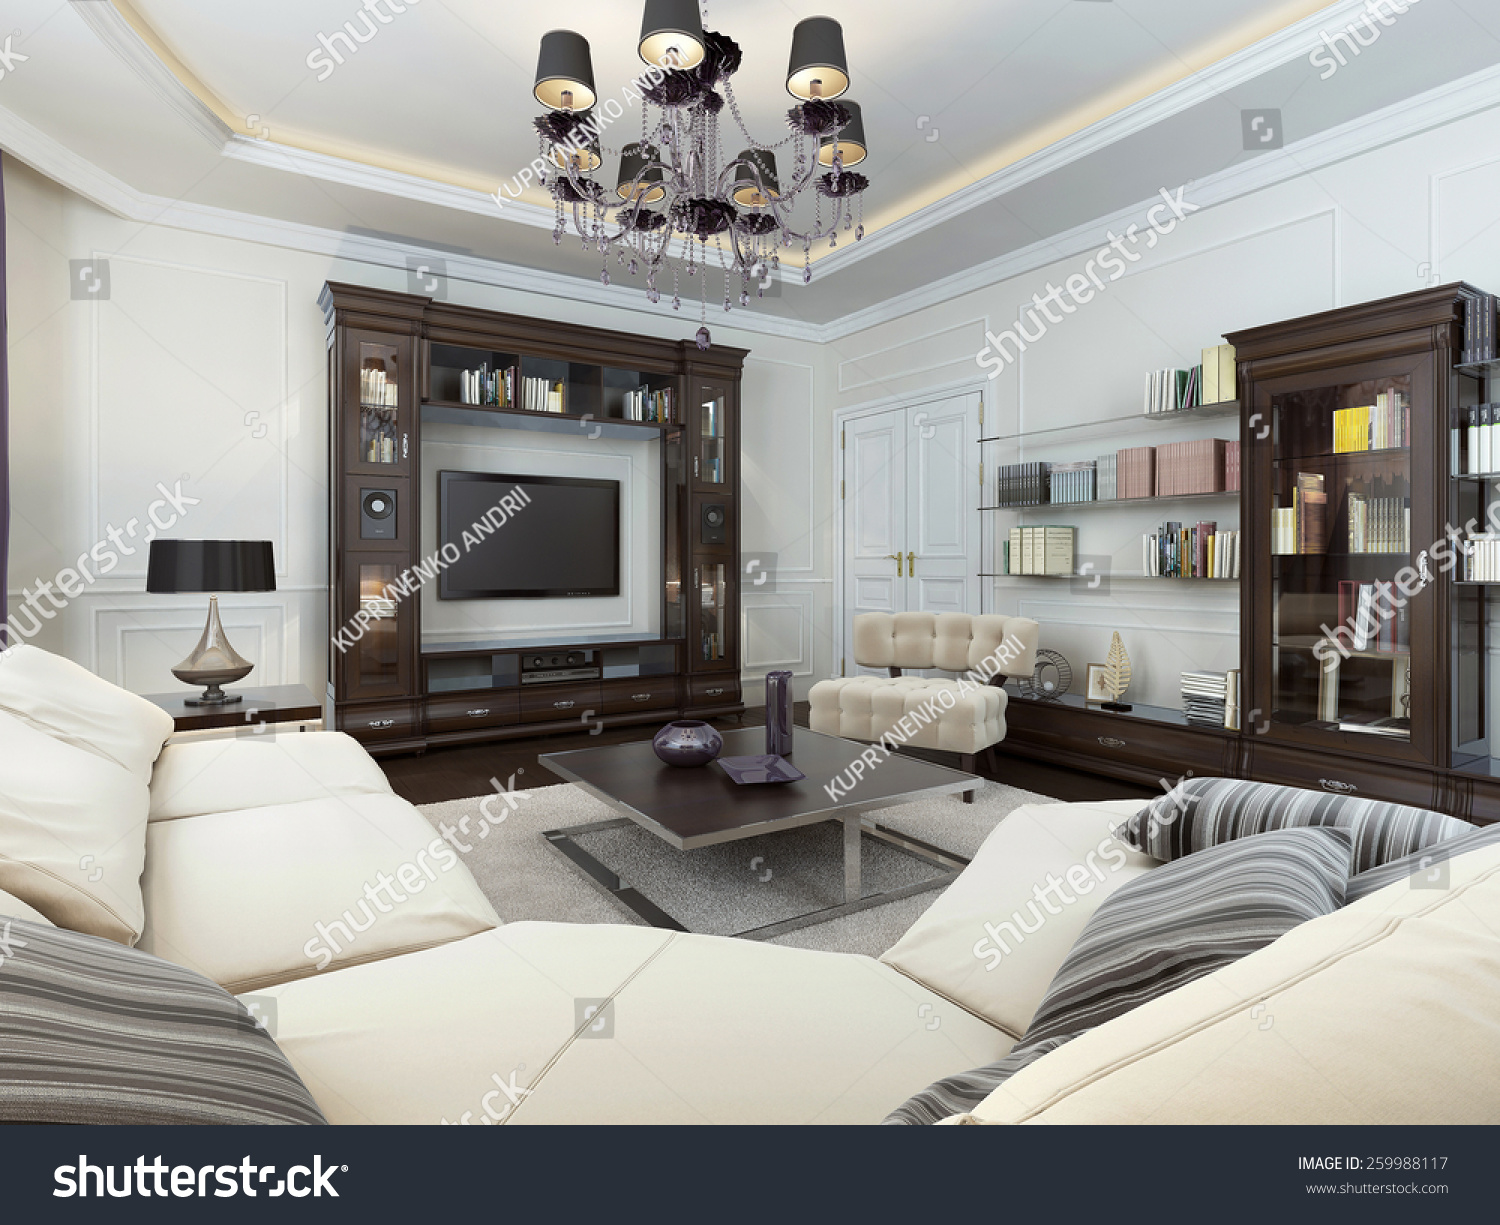 Living Room In Art Deco Style, 3d Images Part 39